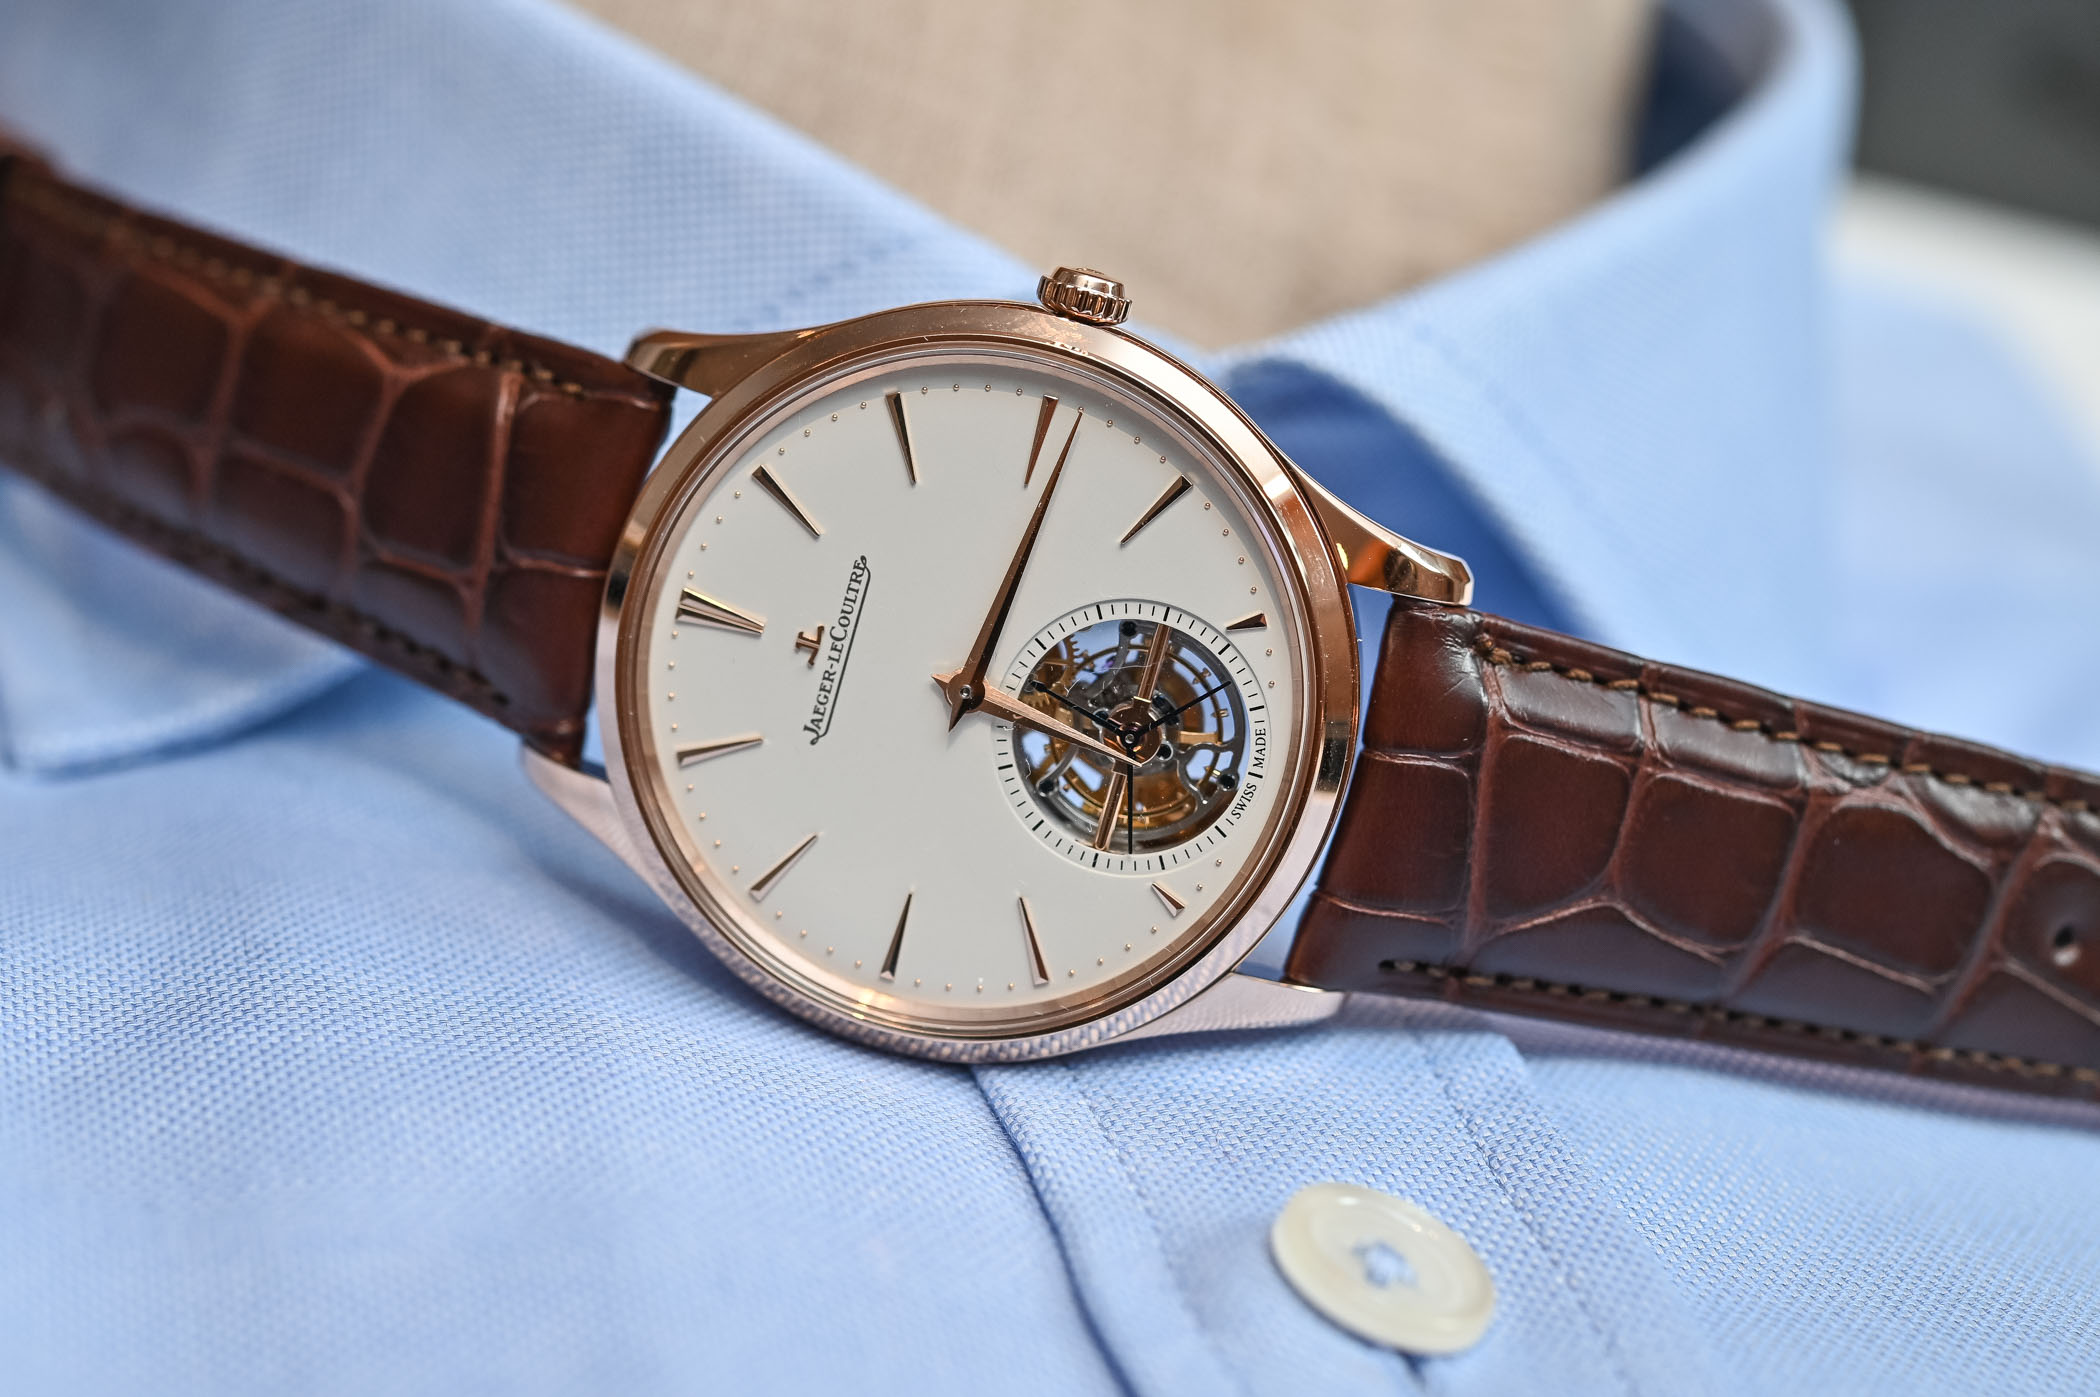 Jaeger-LeCoultre Master Ultra Thin Tourbillon Pink Gold 2019 - 1